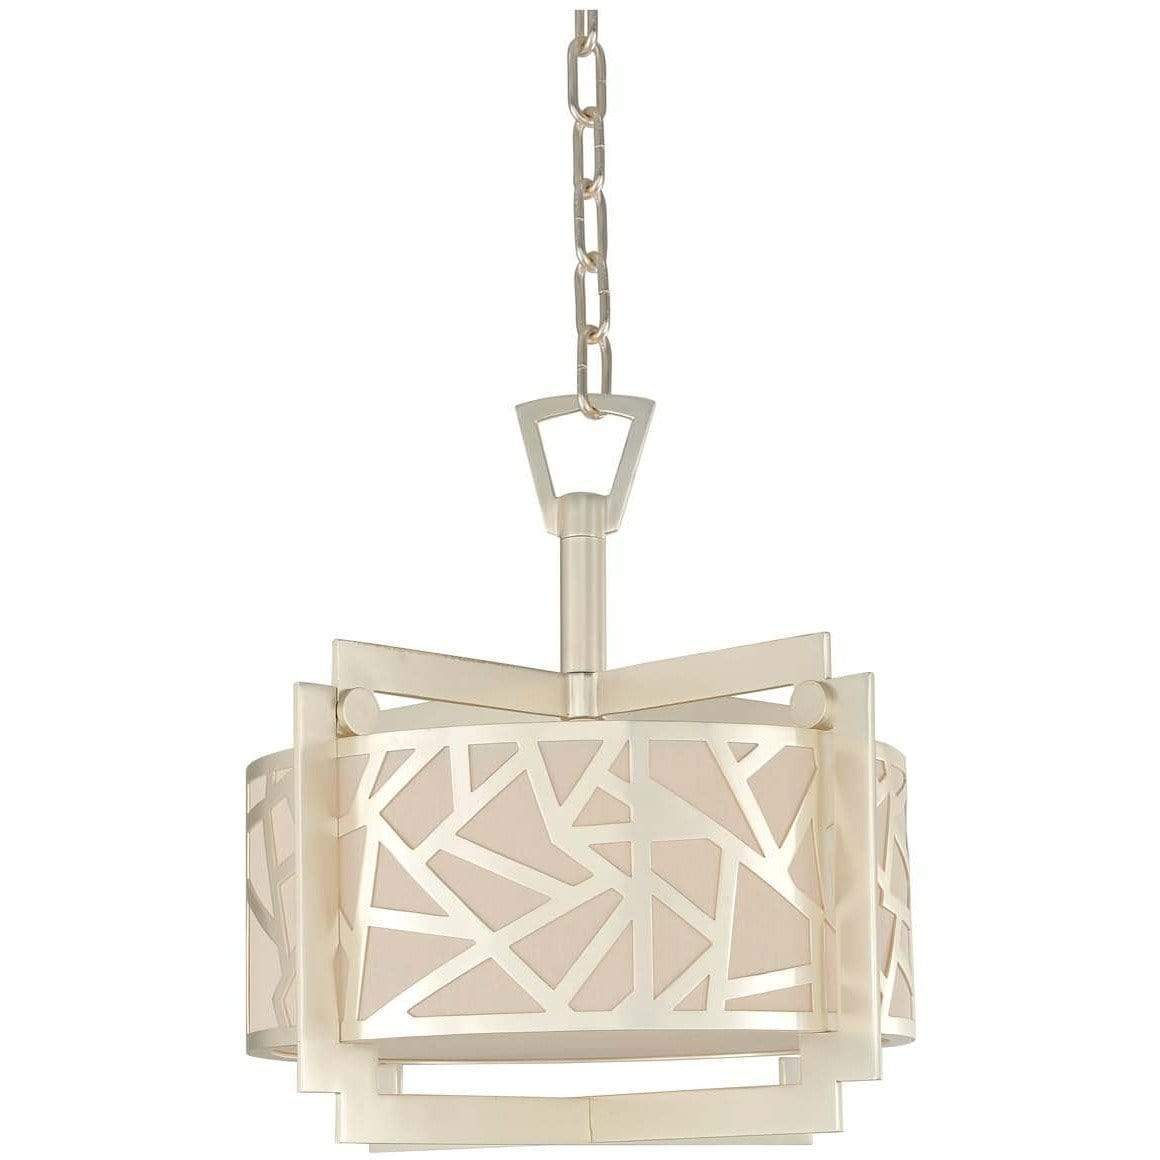 Kalco Lighting Dual Mounts Rose Silver Miramar 16 Inch Convertible Pendant - Semi Flush Mount By Kalco Lighting 303552